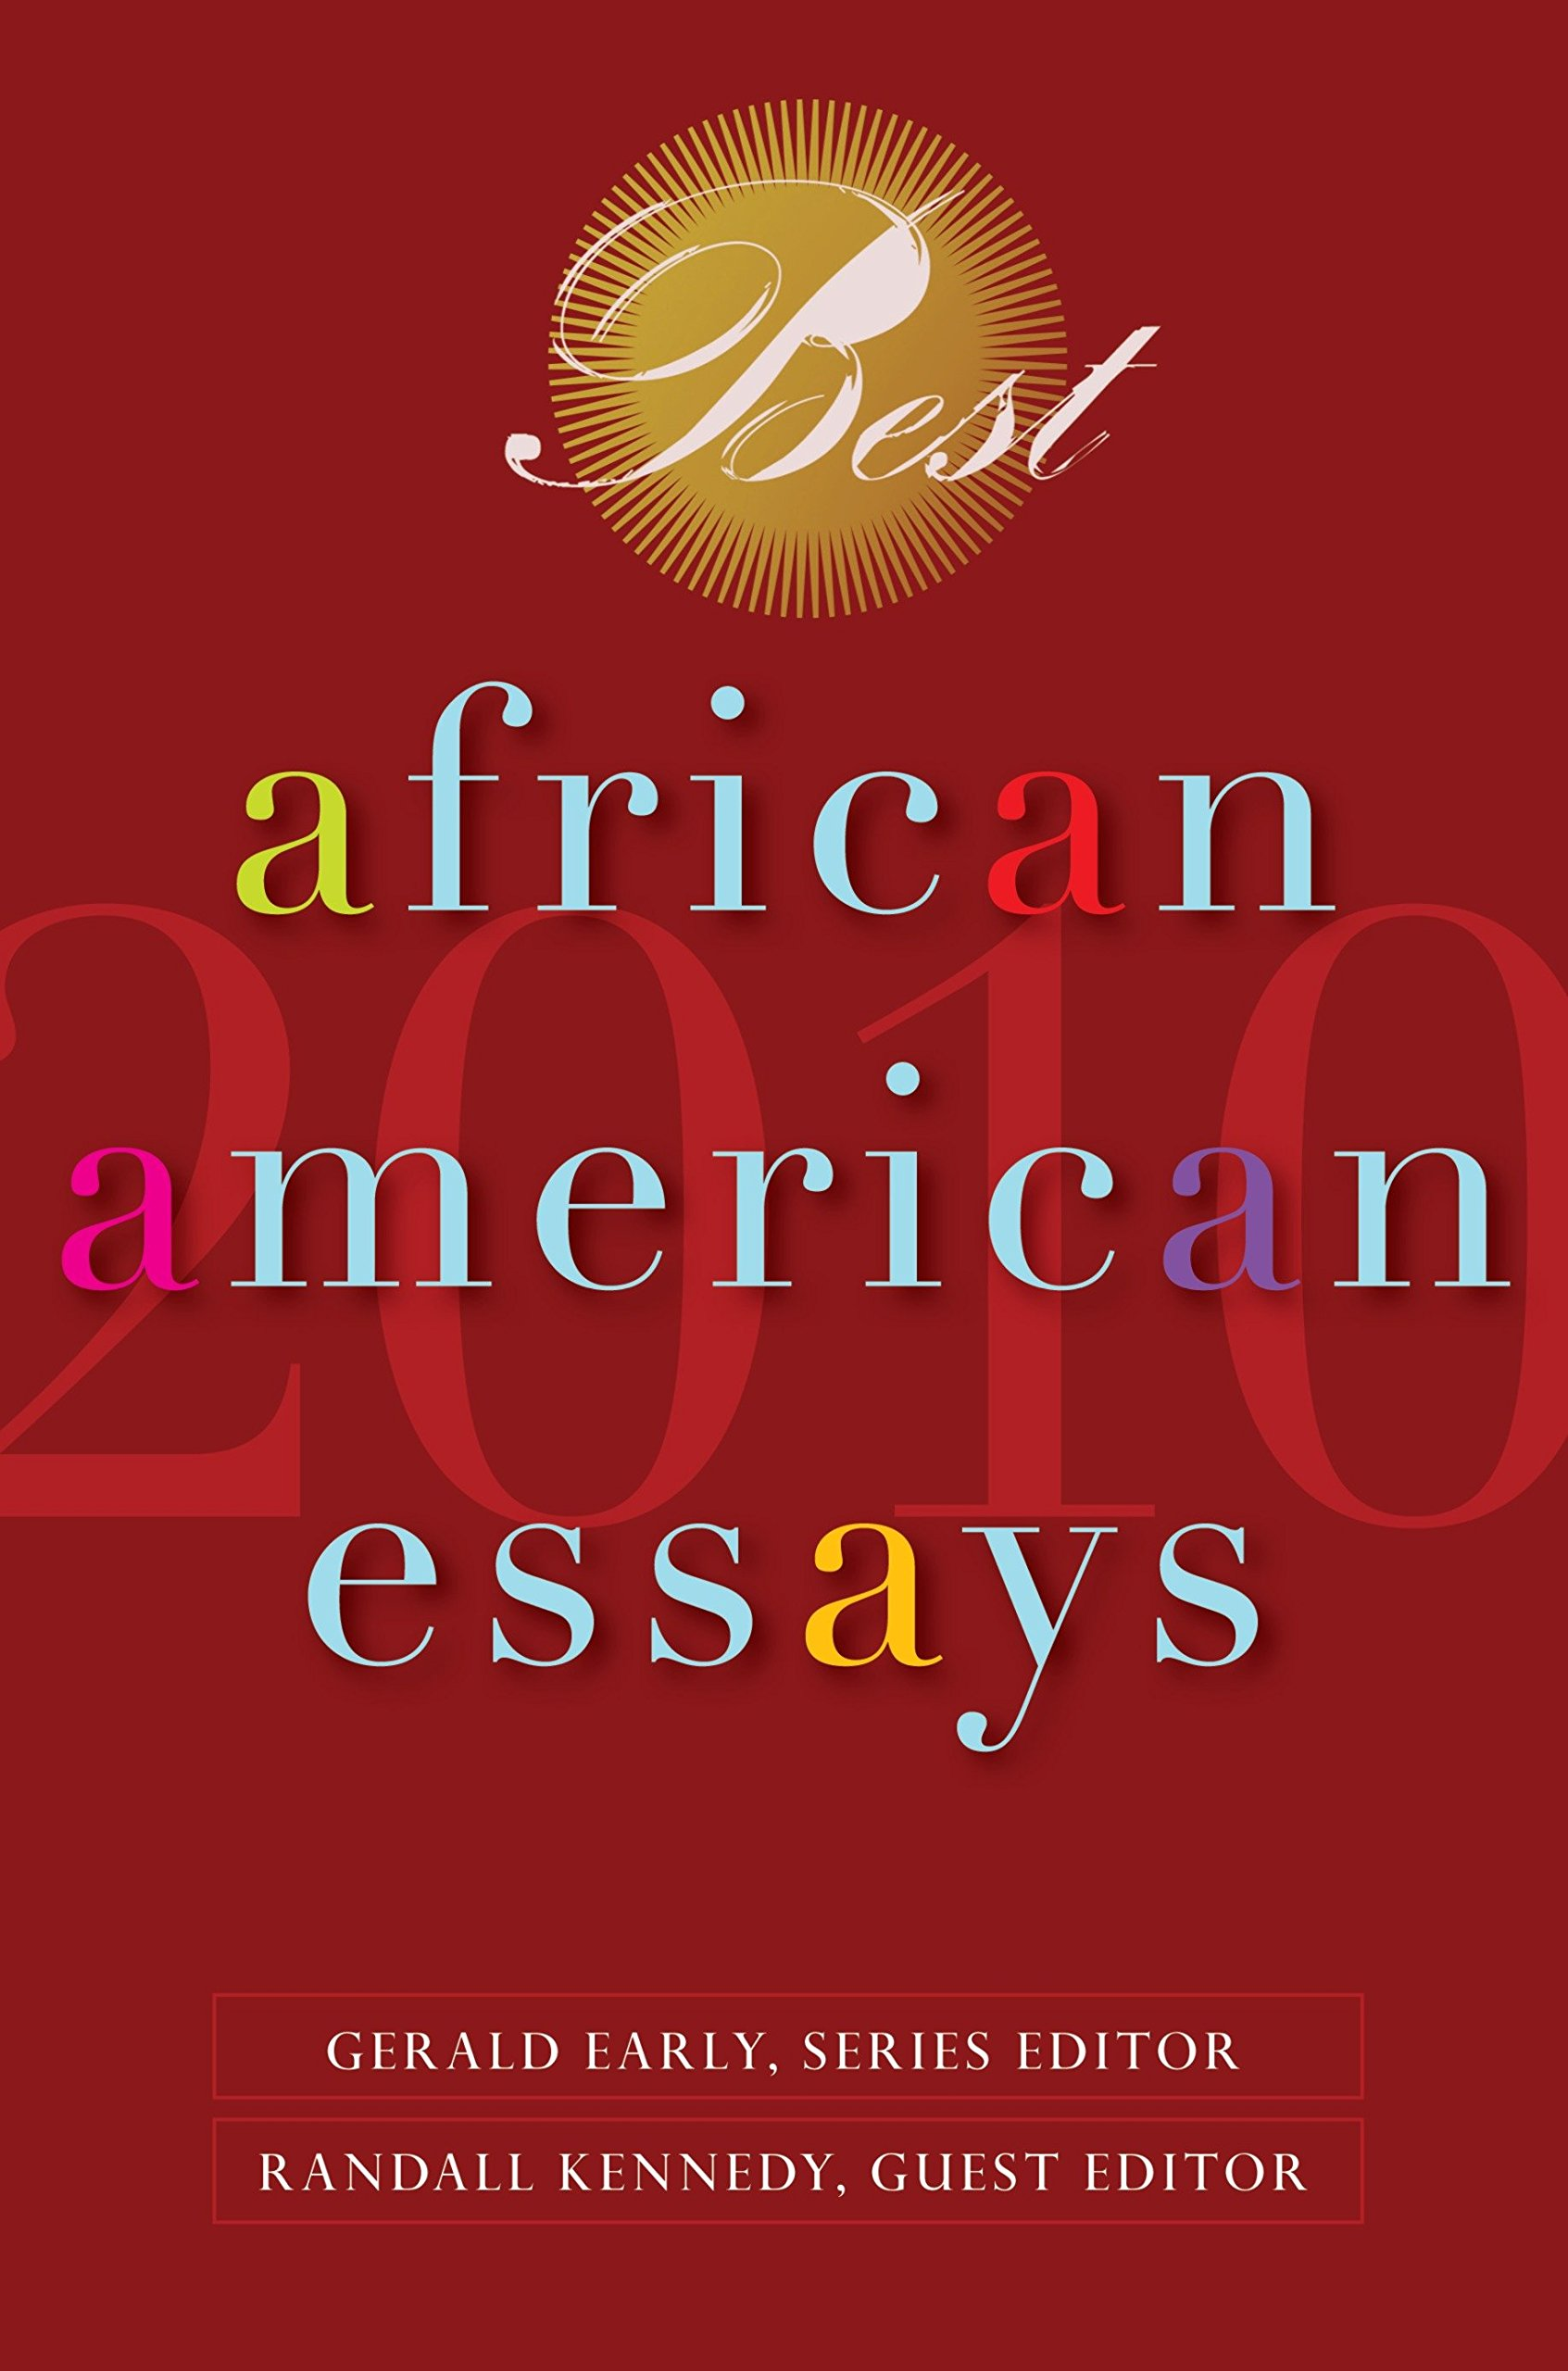 Wonder Of Science Essay Best African American Essays  Dorothy Sterling Chris Abani Randall  Kennedy Nikki Giovanni Gerald Early  Amazoncom Books Essay Thesis Statement Generator also Simple Essays In English Best African American Essays  Dorothy Sterling Chris Abani  Argument Essay Paper Outline